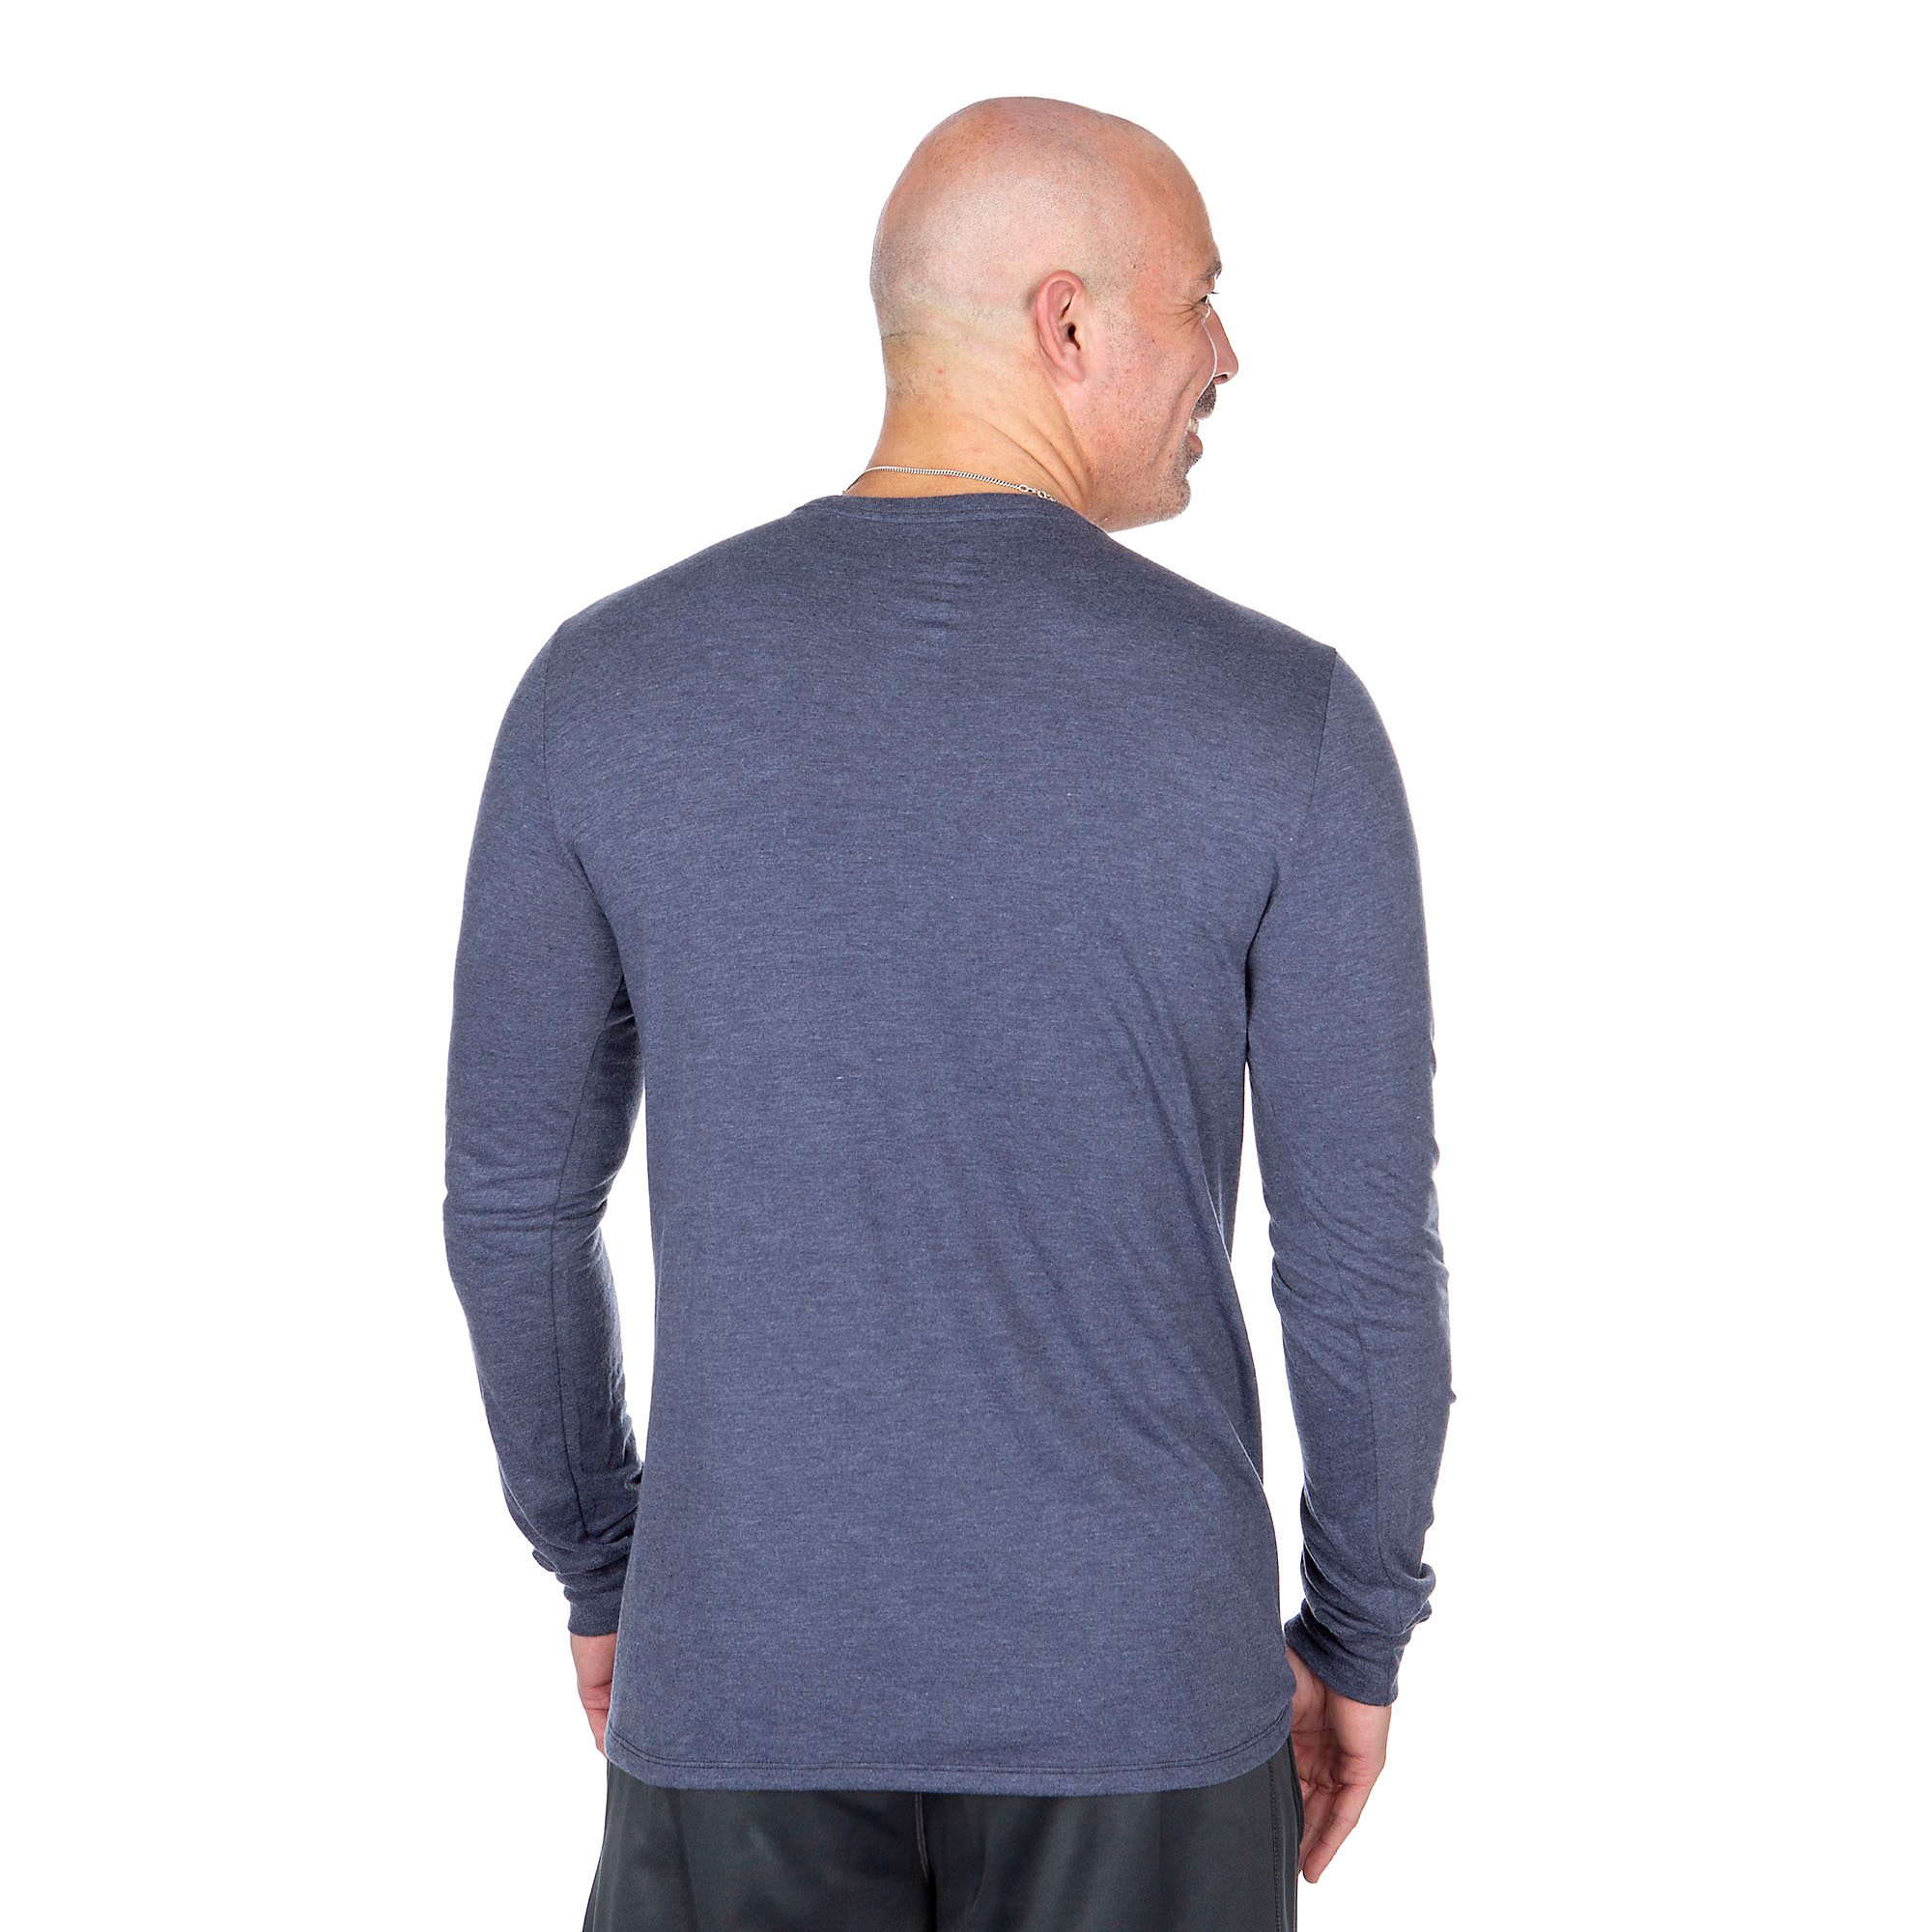 Dallas Cowboys Nike Tri Vault Long Sleeve Tee ... 2eefd849c